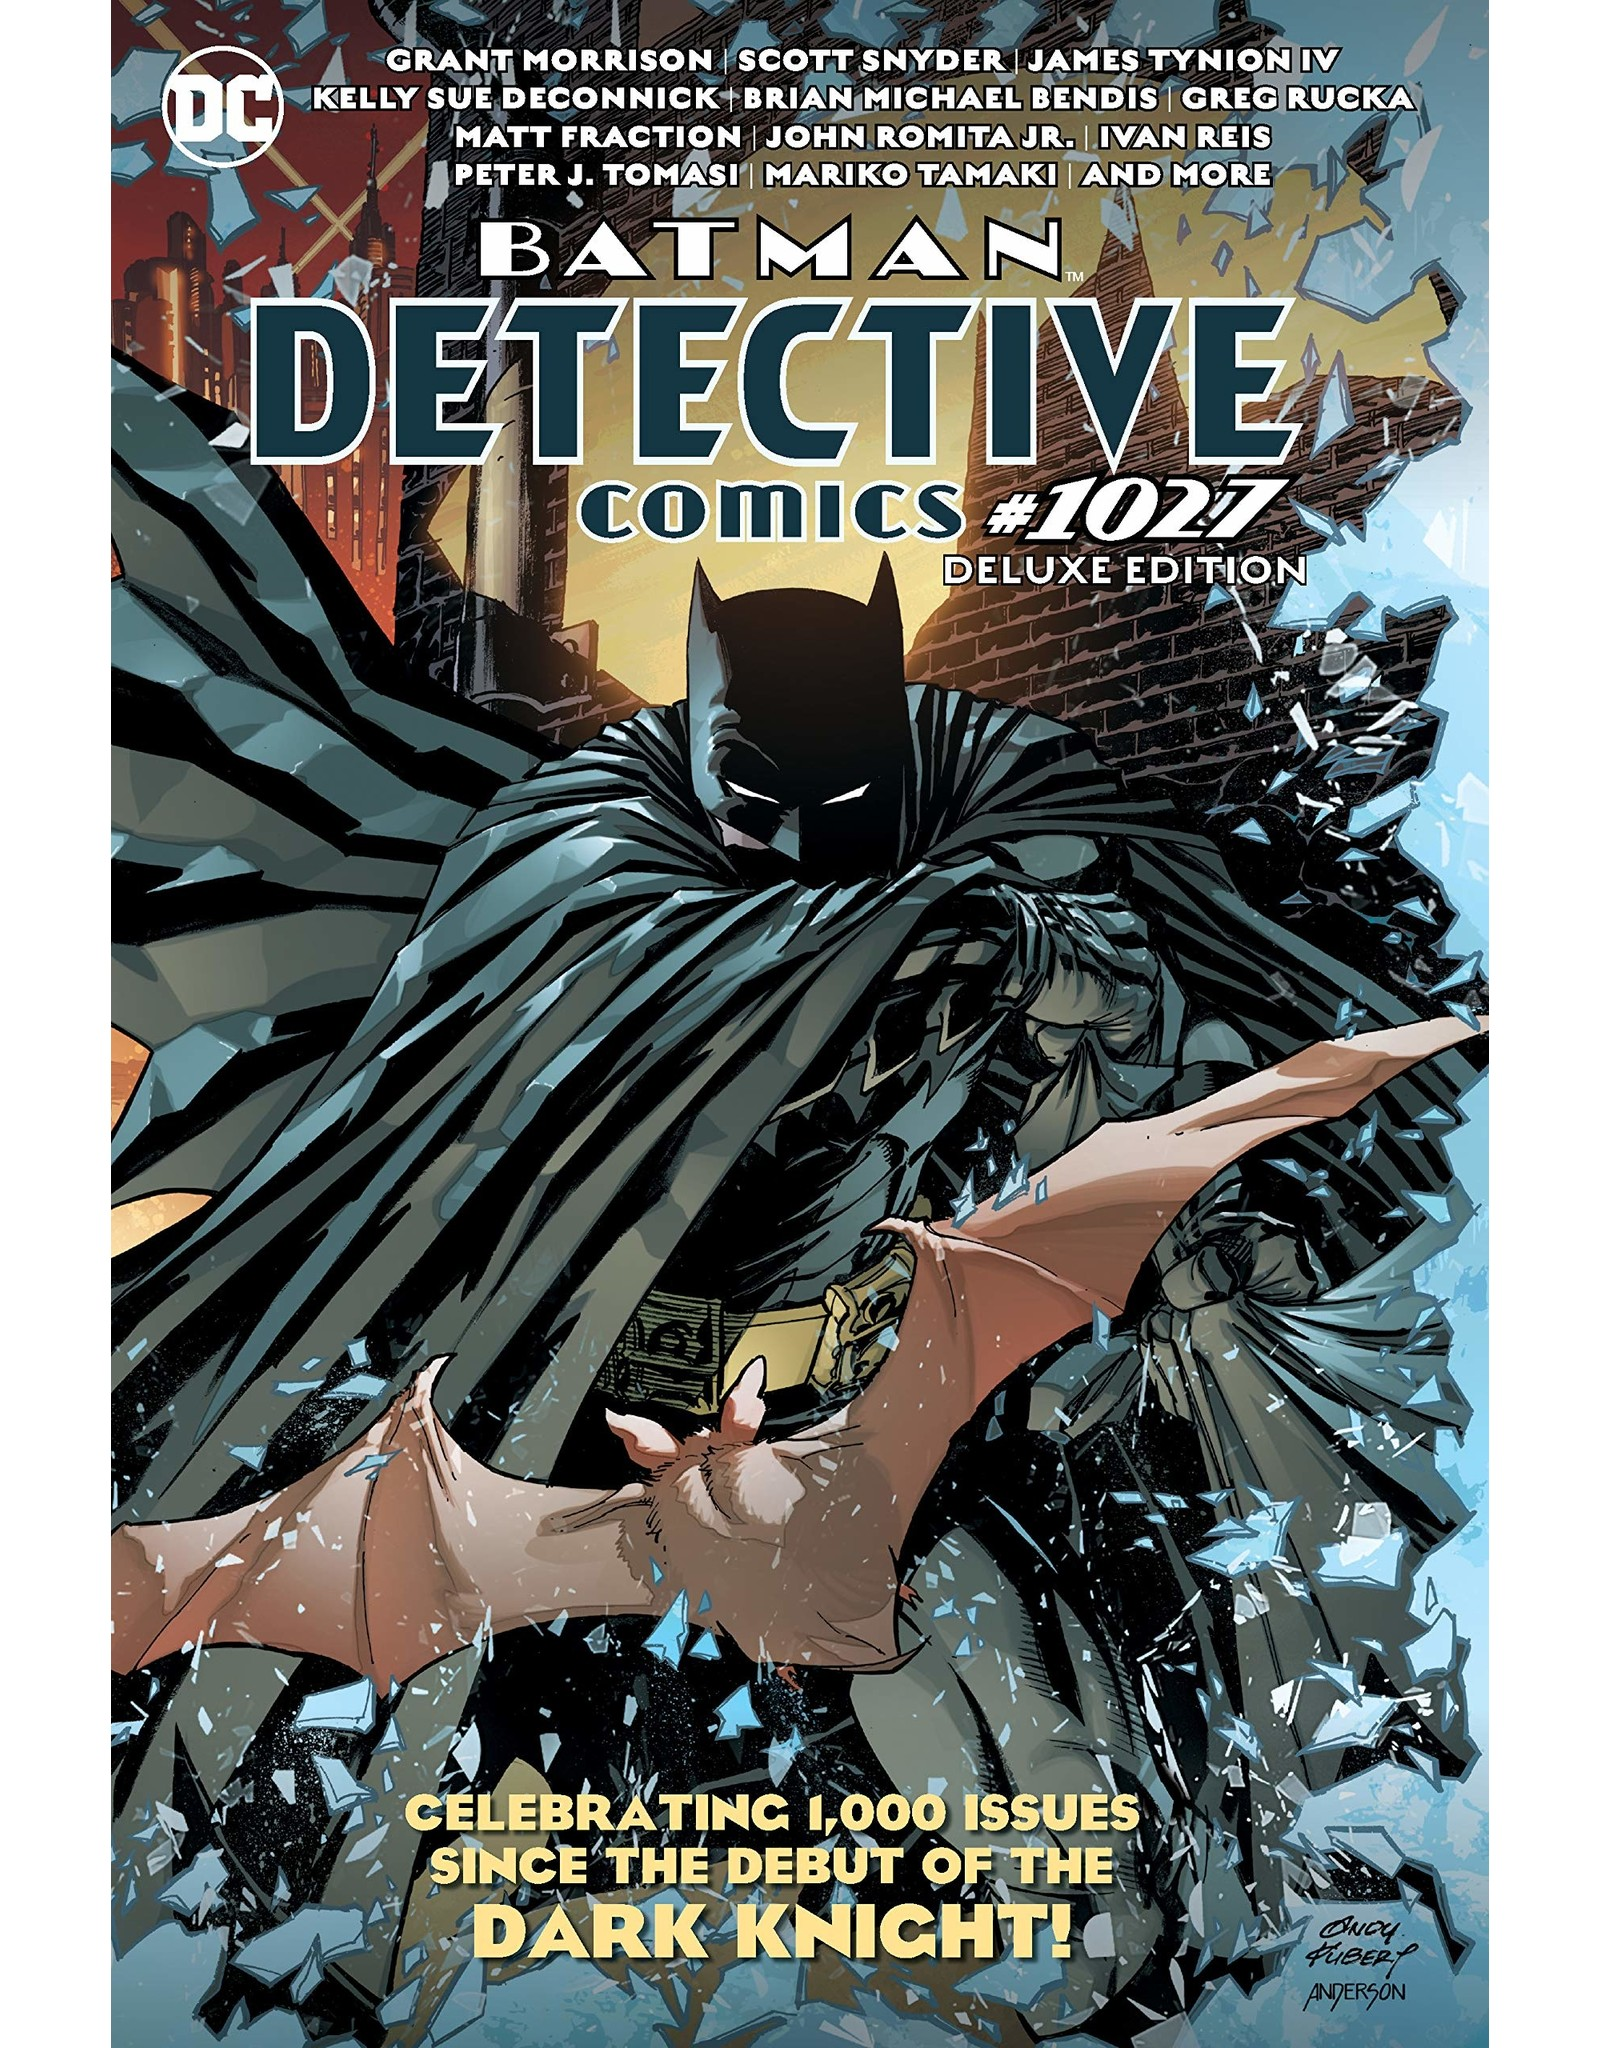 DC COMICS BATMAN DETECTIVE COMICS #1027 THE DELUXE EDITION HC